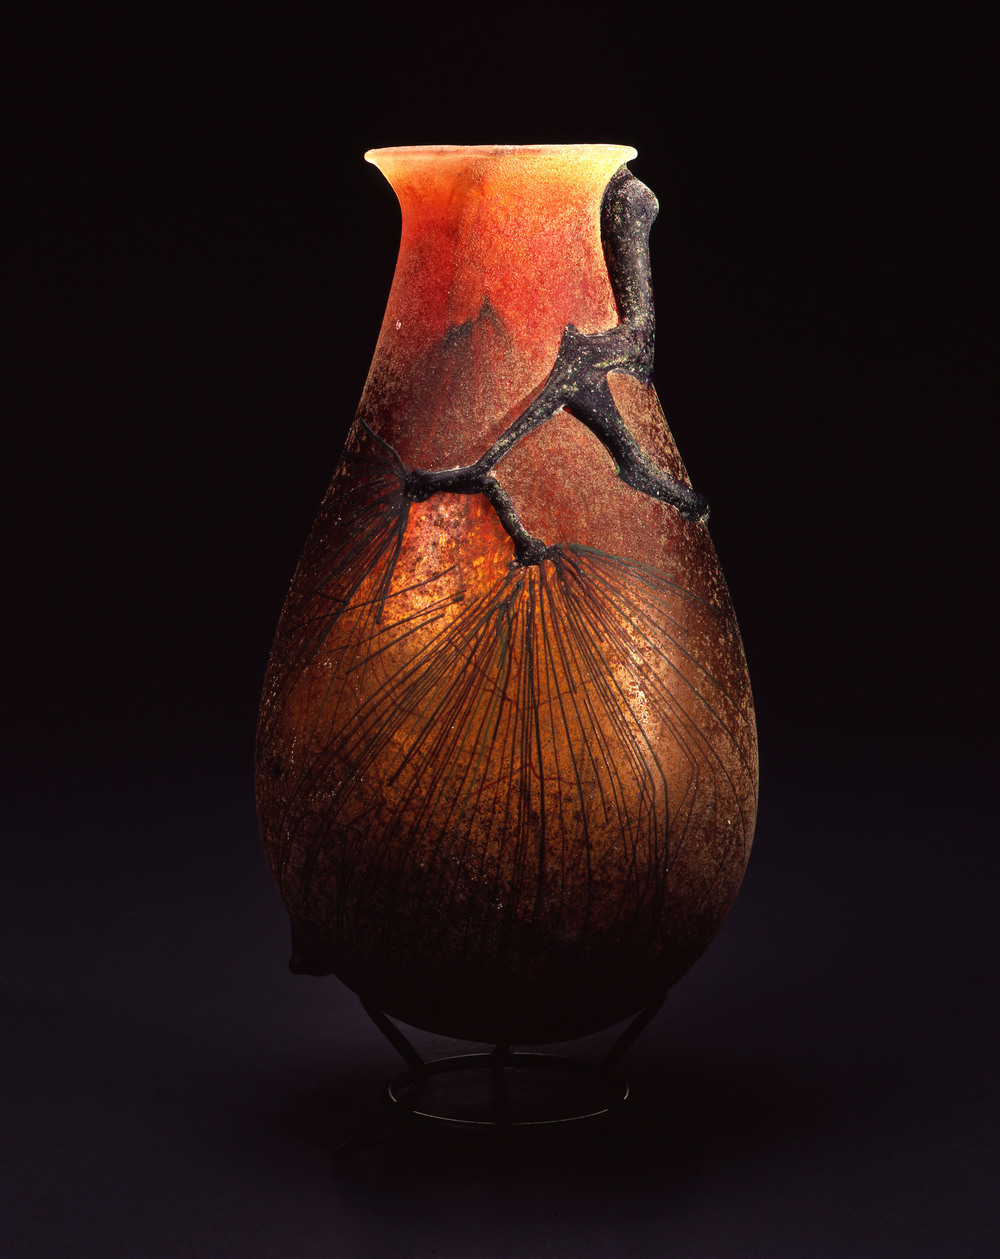 William Morris,  Vase with Ponderosa Pine Boughs  (2004, glass, 14 x 6 3/4 x 6 3/4 inches), WM.42